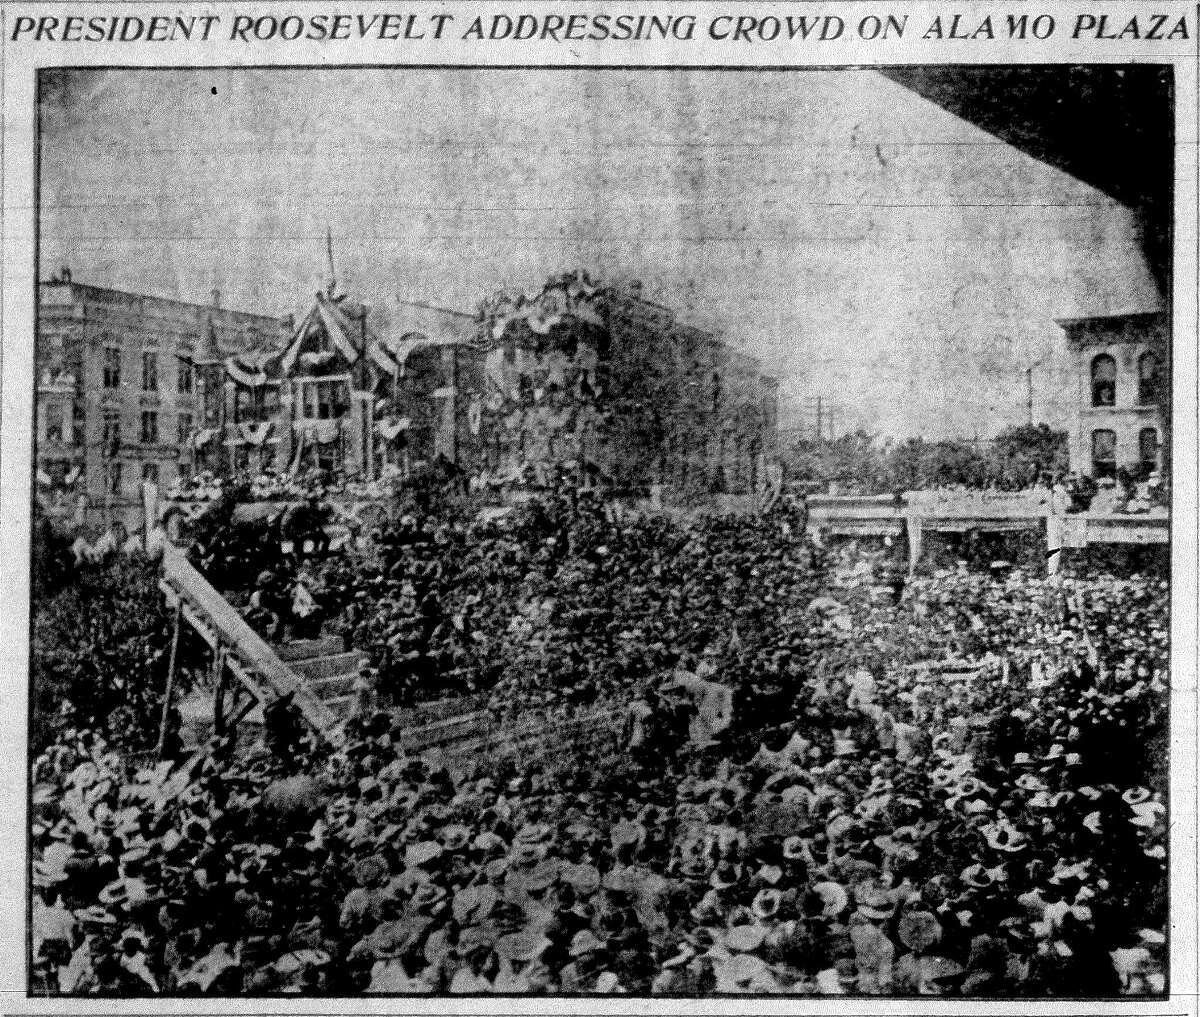 President Theodore Roosevelt is shown giving a speech in Alamo Plaza on April 7, 1905, during a visit to San Antonio for a Rough Riders reunion. Photo taken from microfilm image of the San Antonio Express, April 8, 1905.